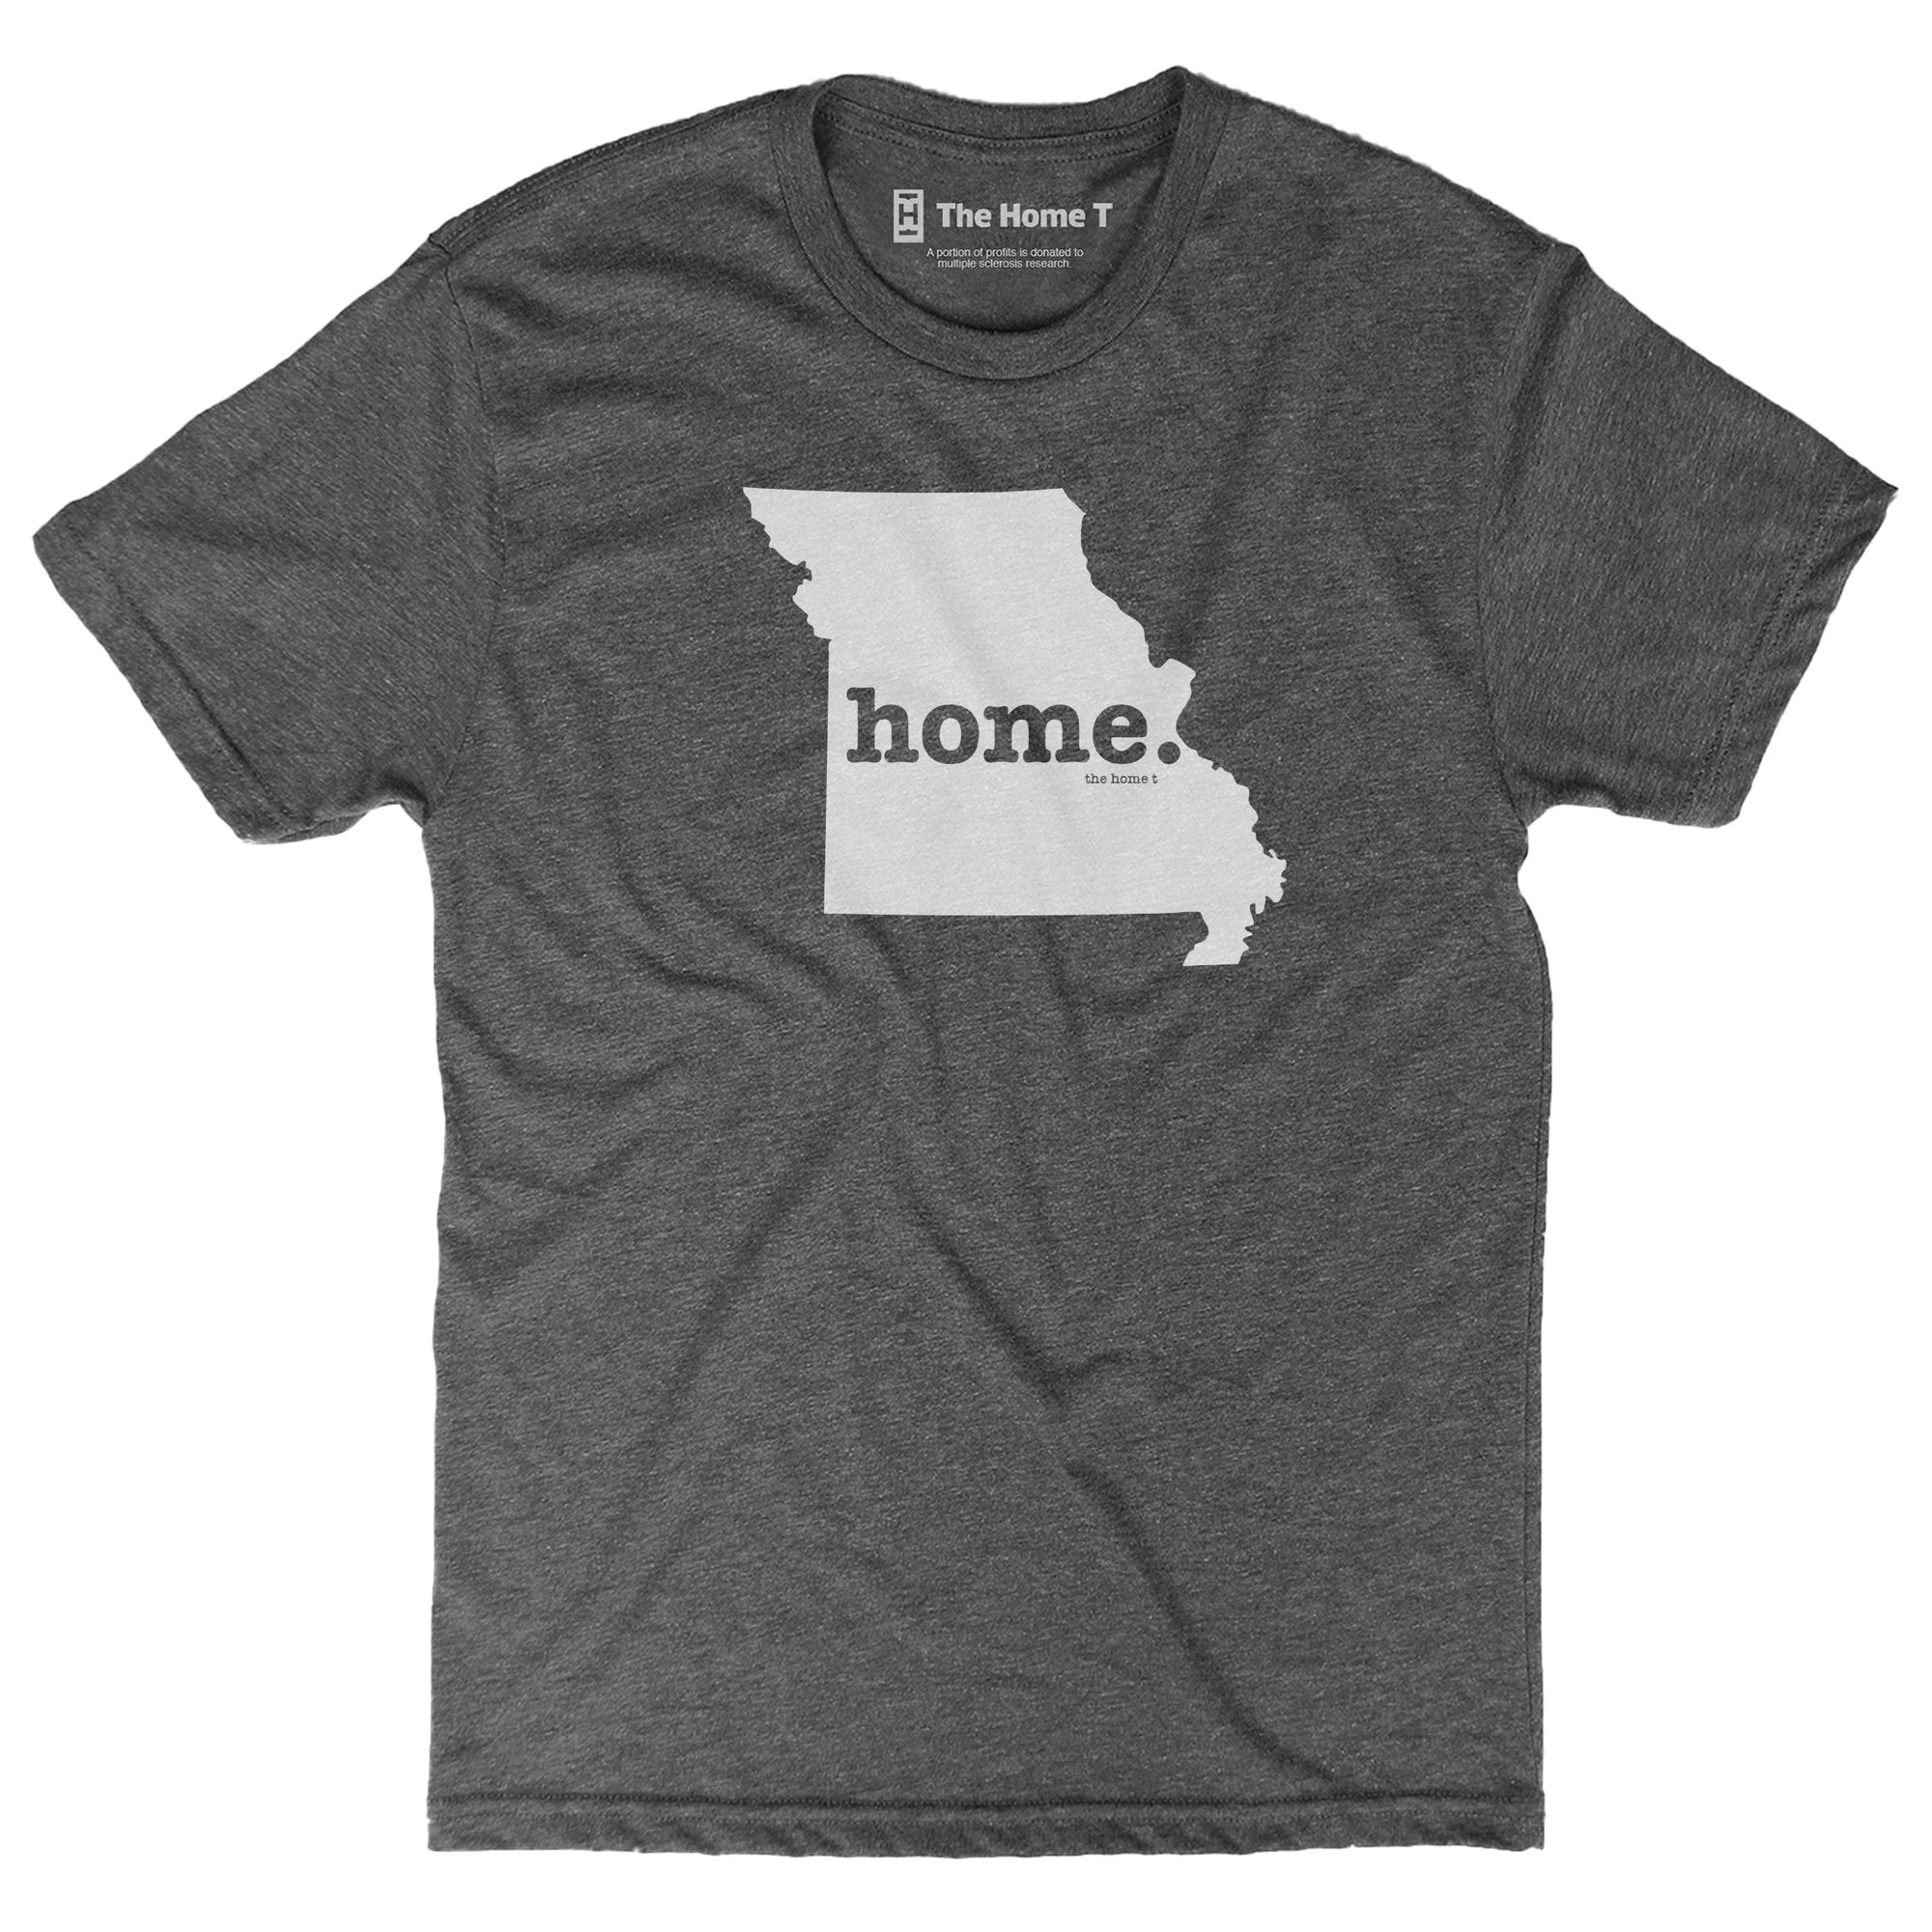 Missouri Home T Original Crew The Home T XS Grey